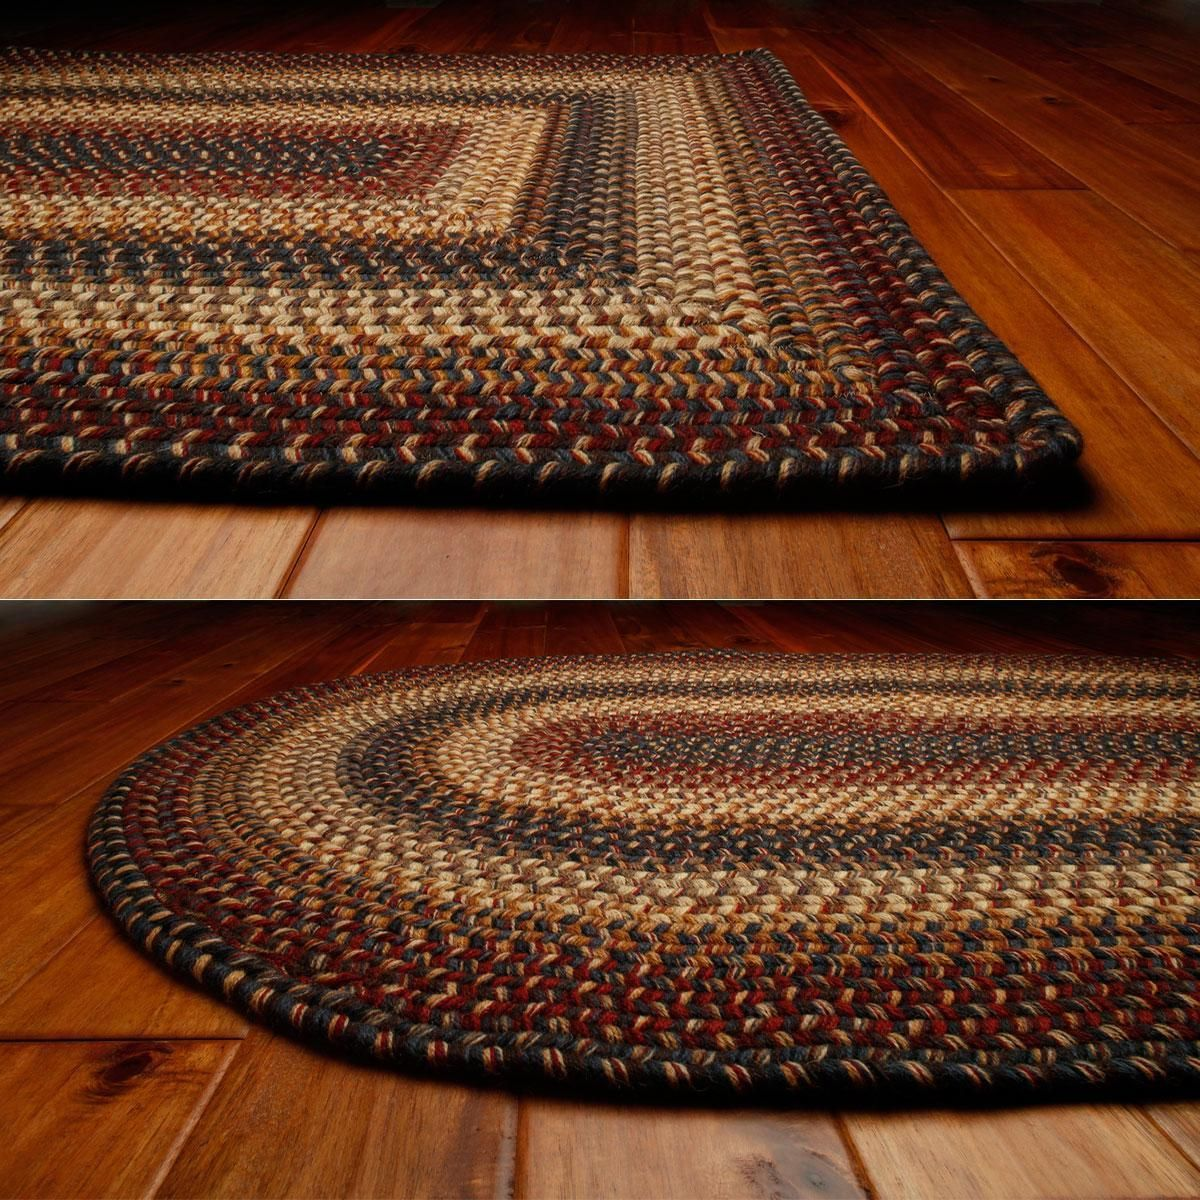 Everything You Need To Know About Braided Rugs In The Design Braided Jute Rug Oval Braided Rugs Braided Rugs